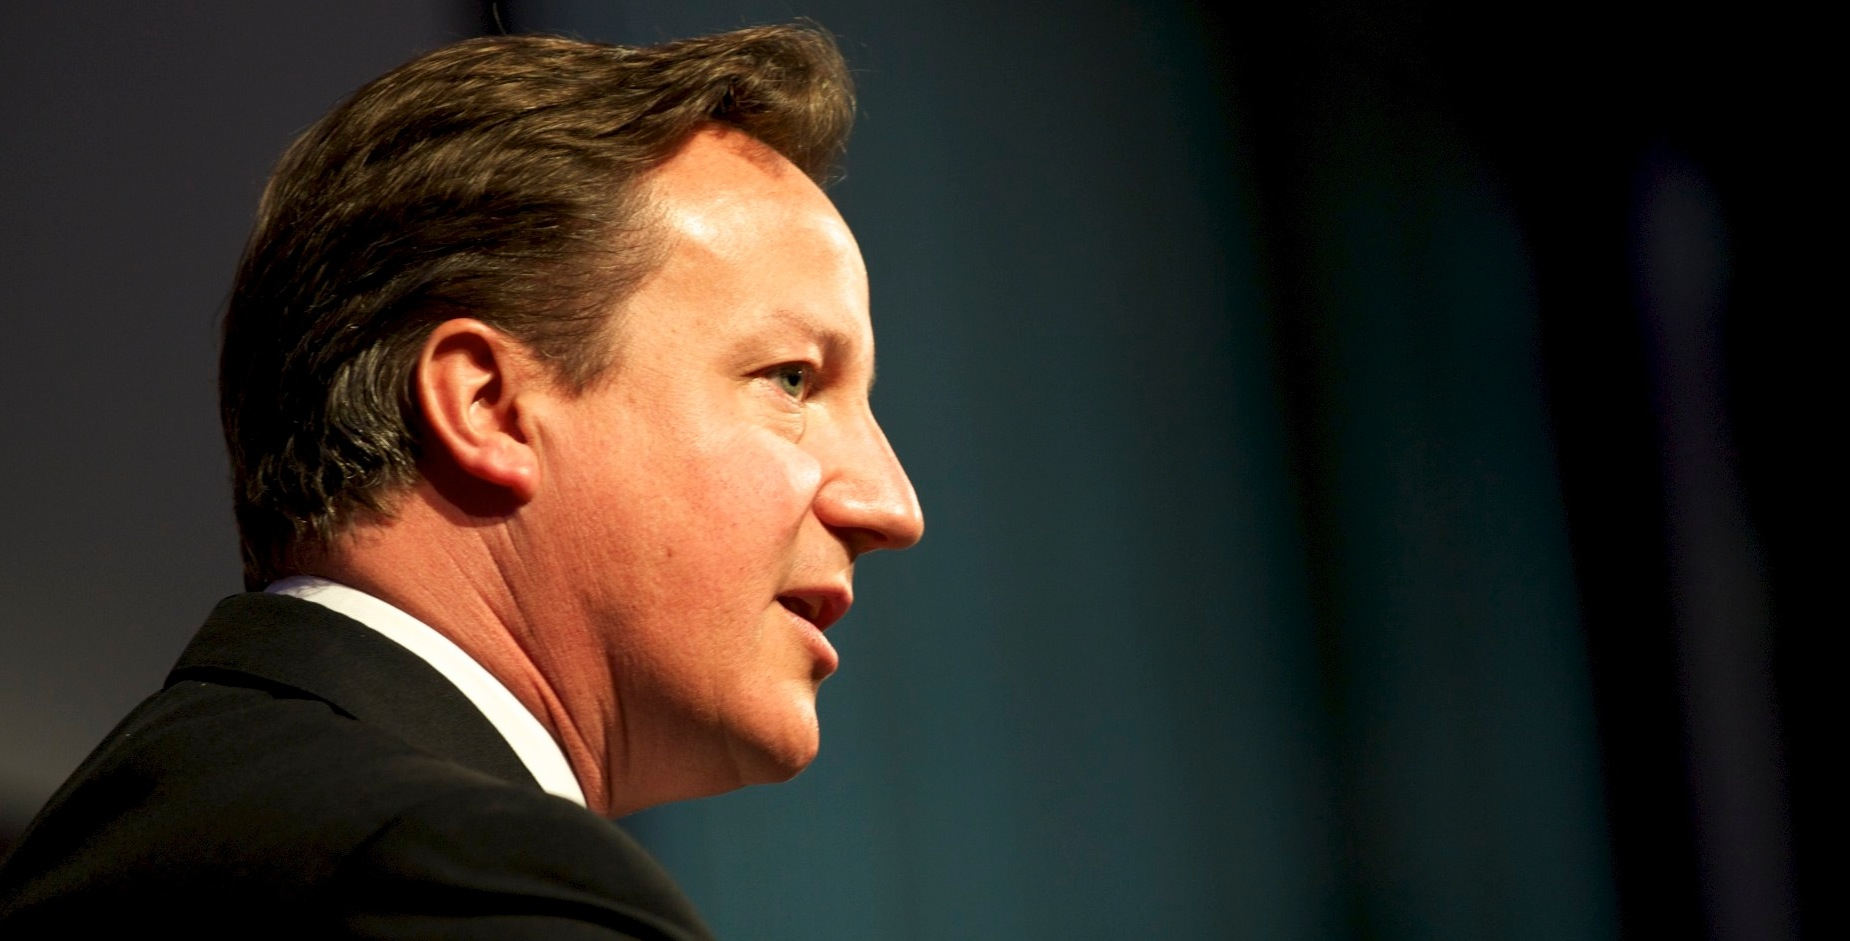 Prime_Minister_David_Cameron_speaking_at_the_opening_of_the_GAVI_Alliance_immunisations_pledging_conference_2